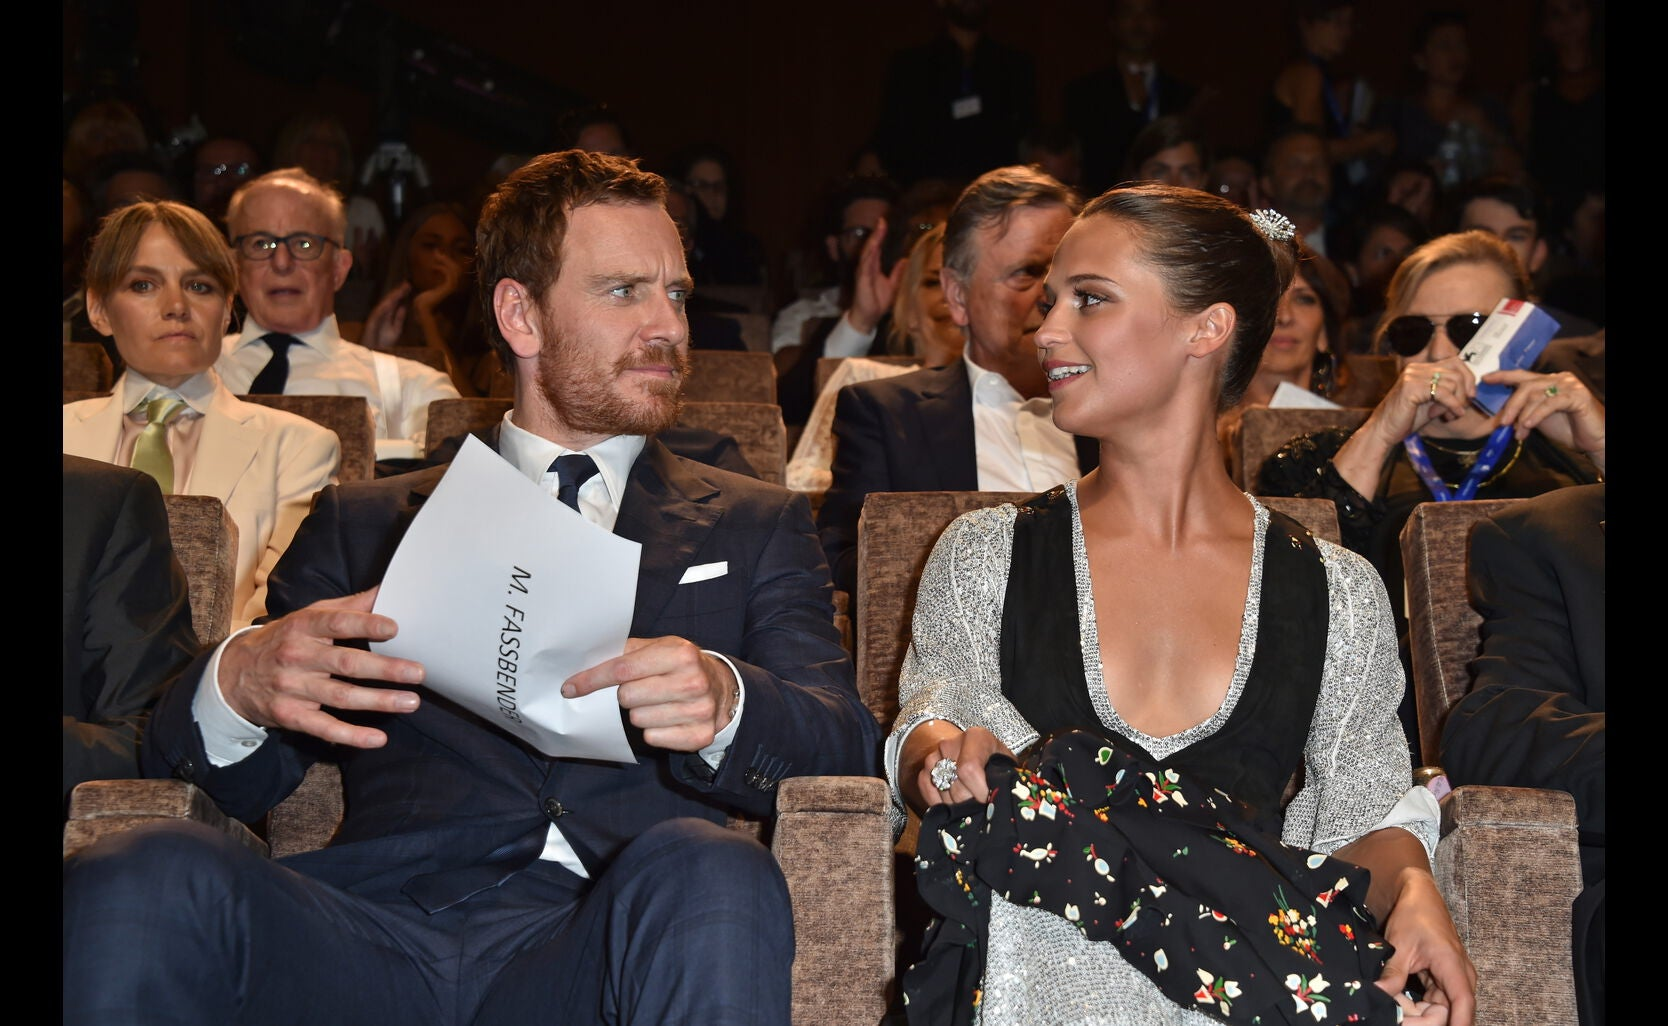 Actors Alicia Vikander and Michael Fassbender, Golden Globe nominees, in Venice 2016